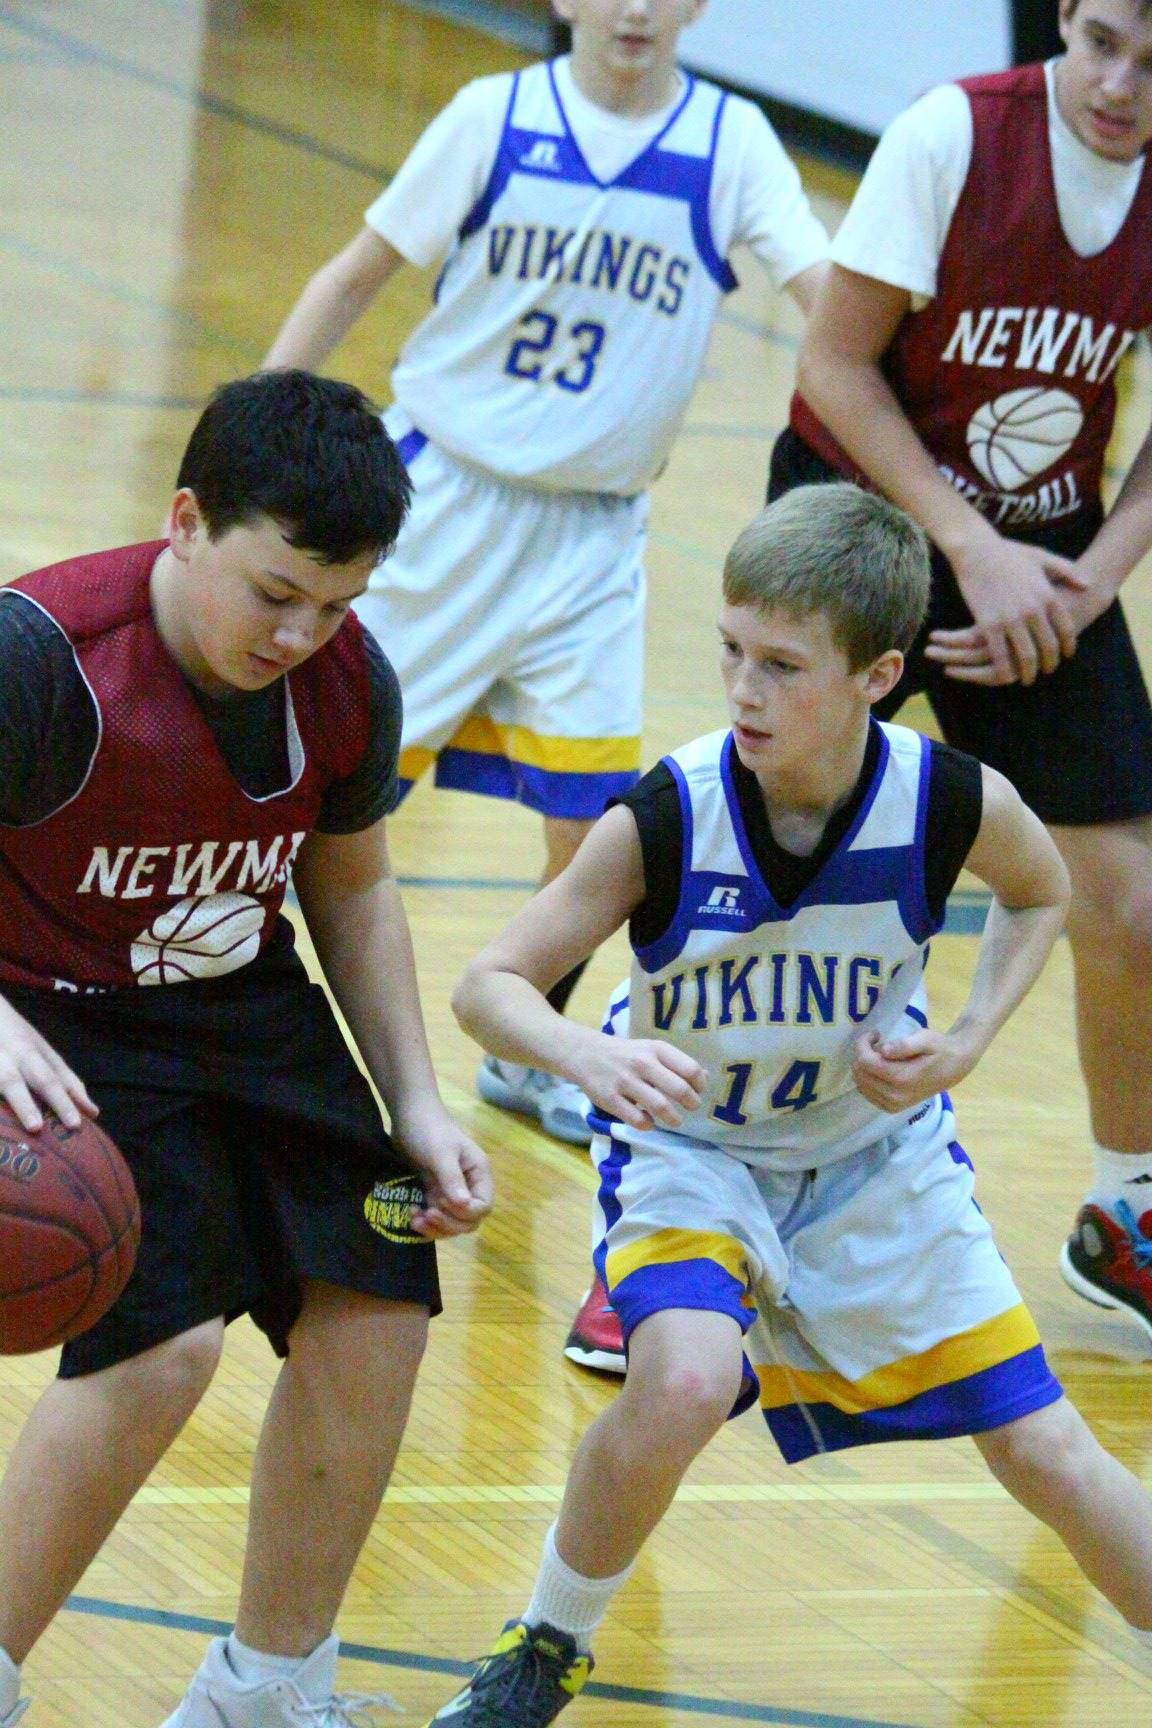 A boy dribbling the basketball while a defender guards him